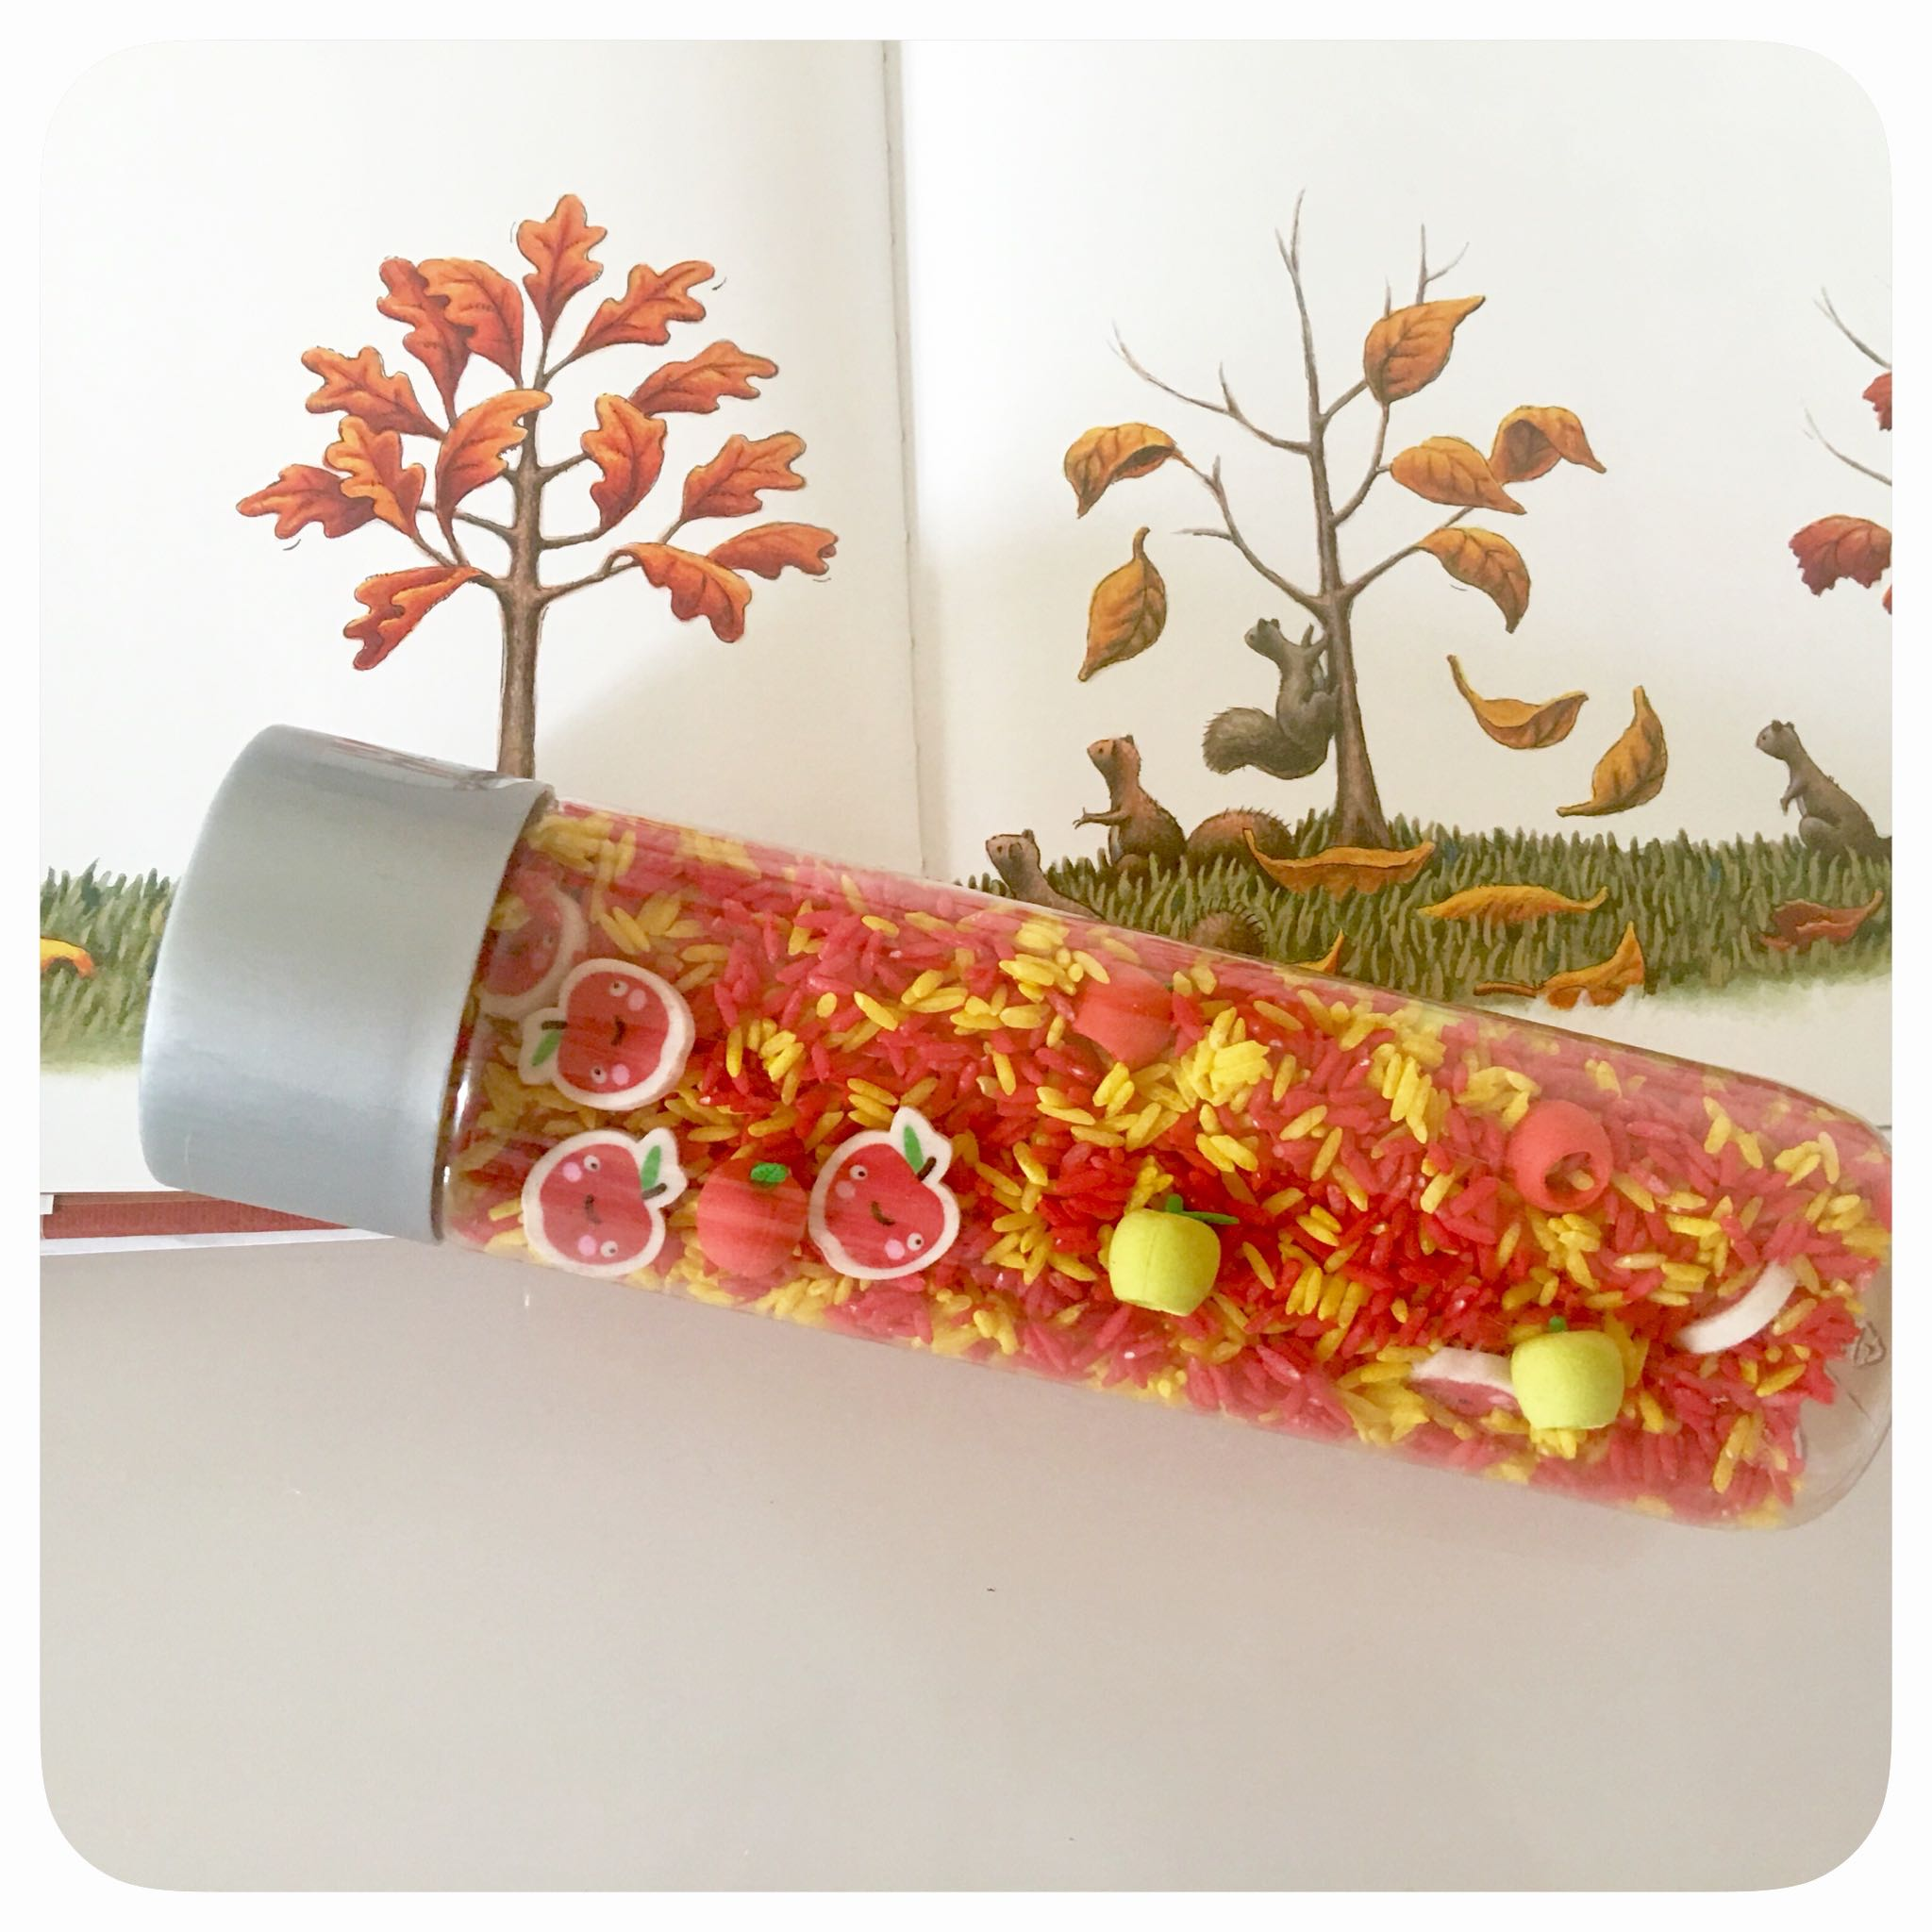 Apple Sensory Bottle: Creating simple sensory bottle activities to explore the letter A and apples. This enhances your child's fine motor skills as they help you to create this wonderful autumn-inspired sensory bottle.